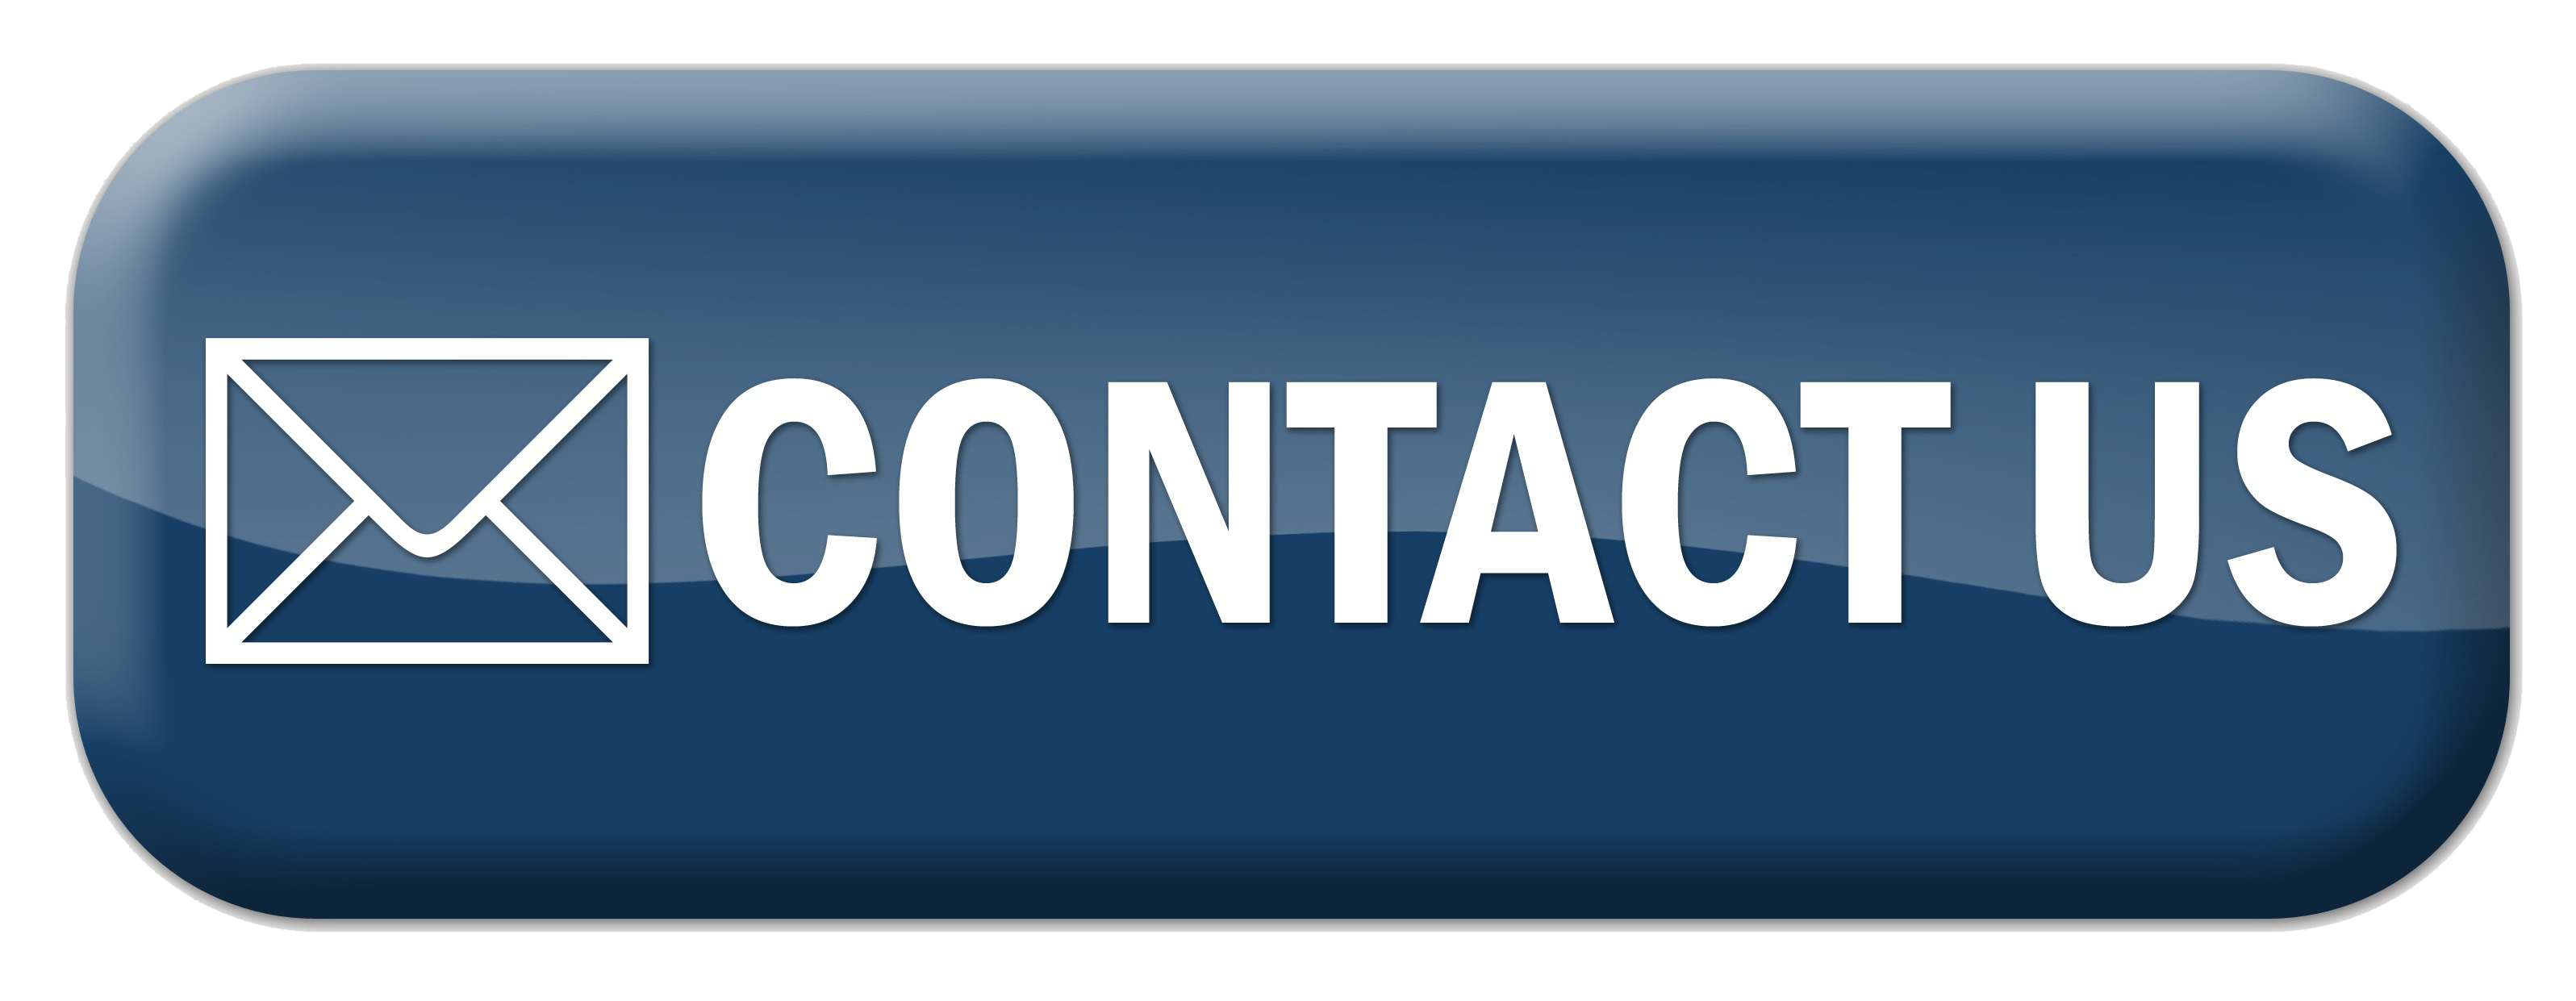 Contact us button png. Rhema gospel church contactusbuttongodofirvingt